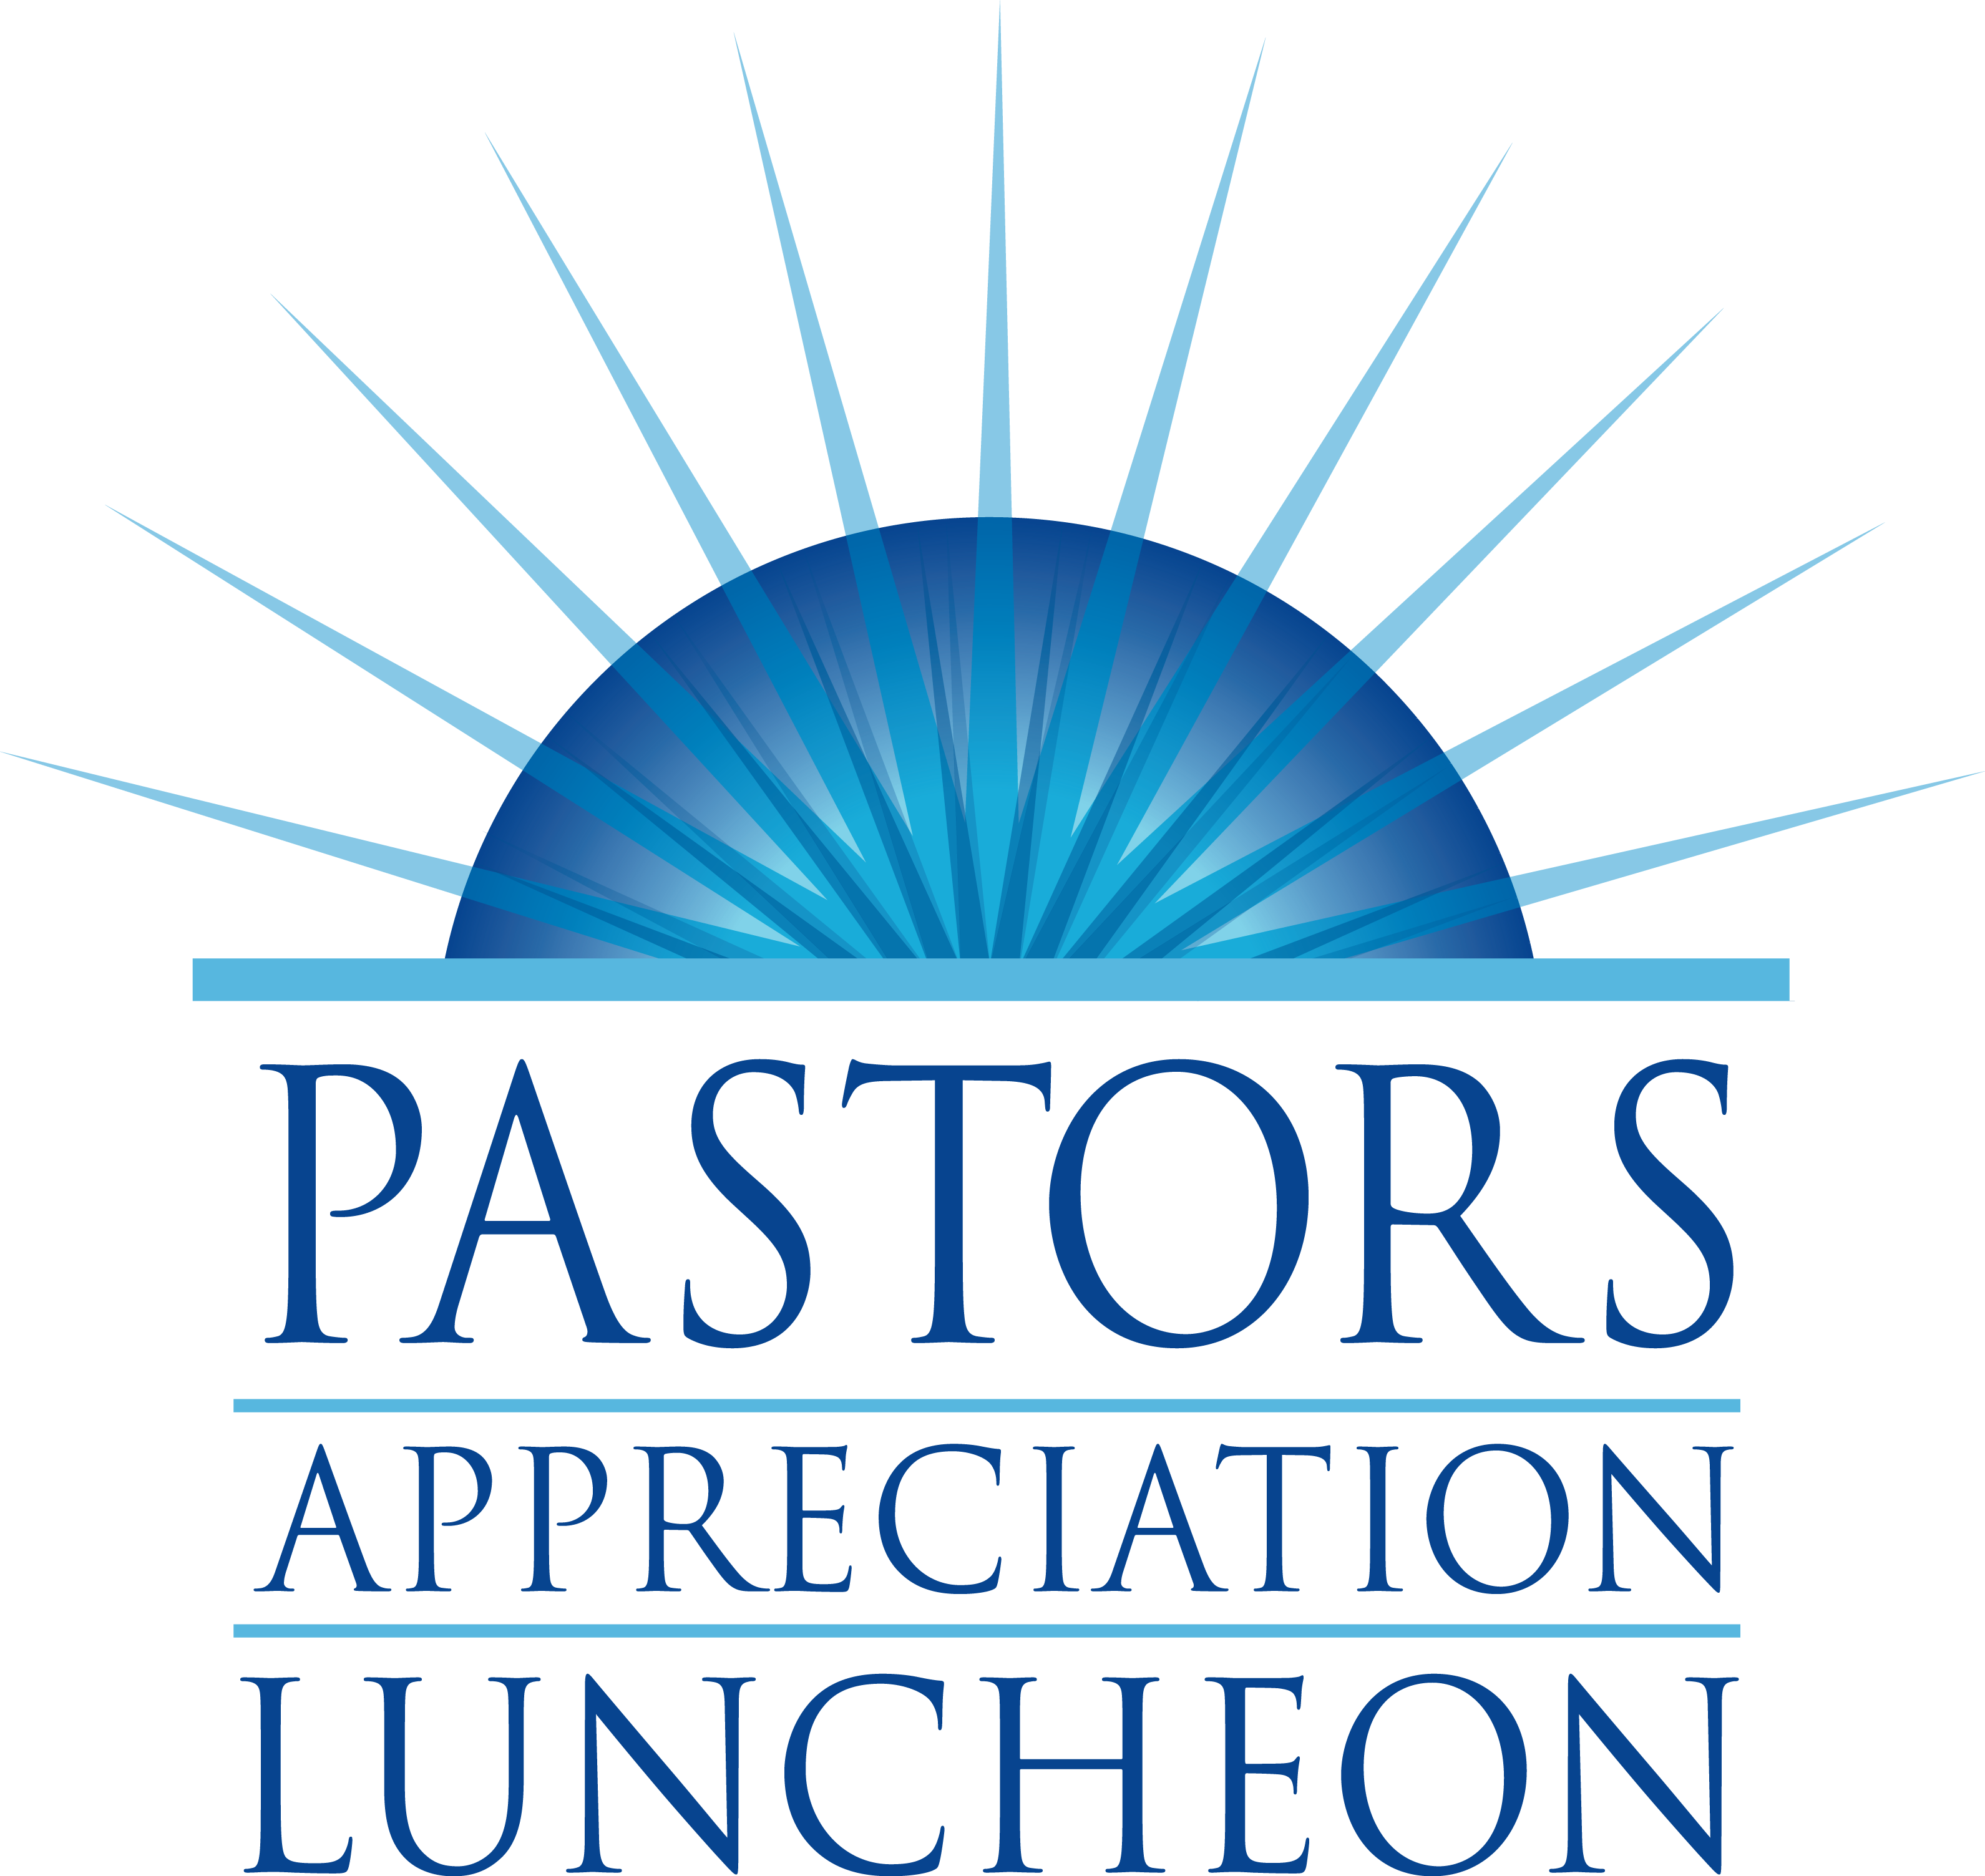 Pastor appreciation image clipart images gallery for free download.